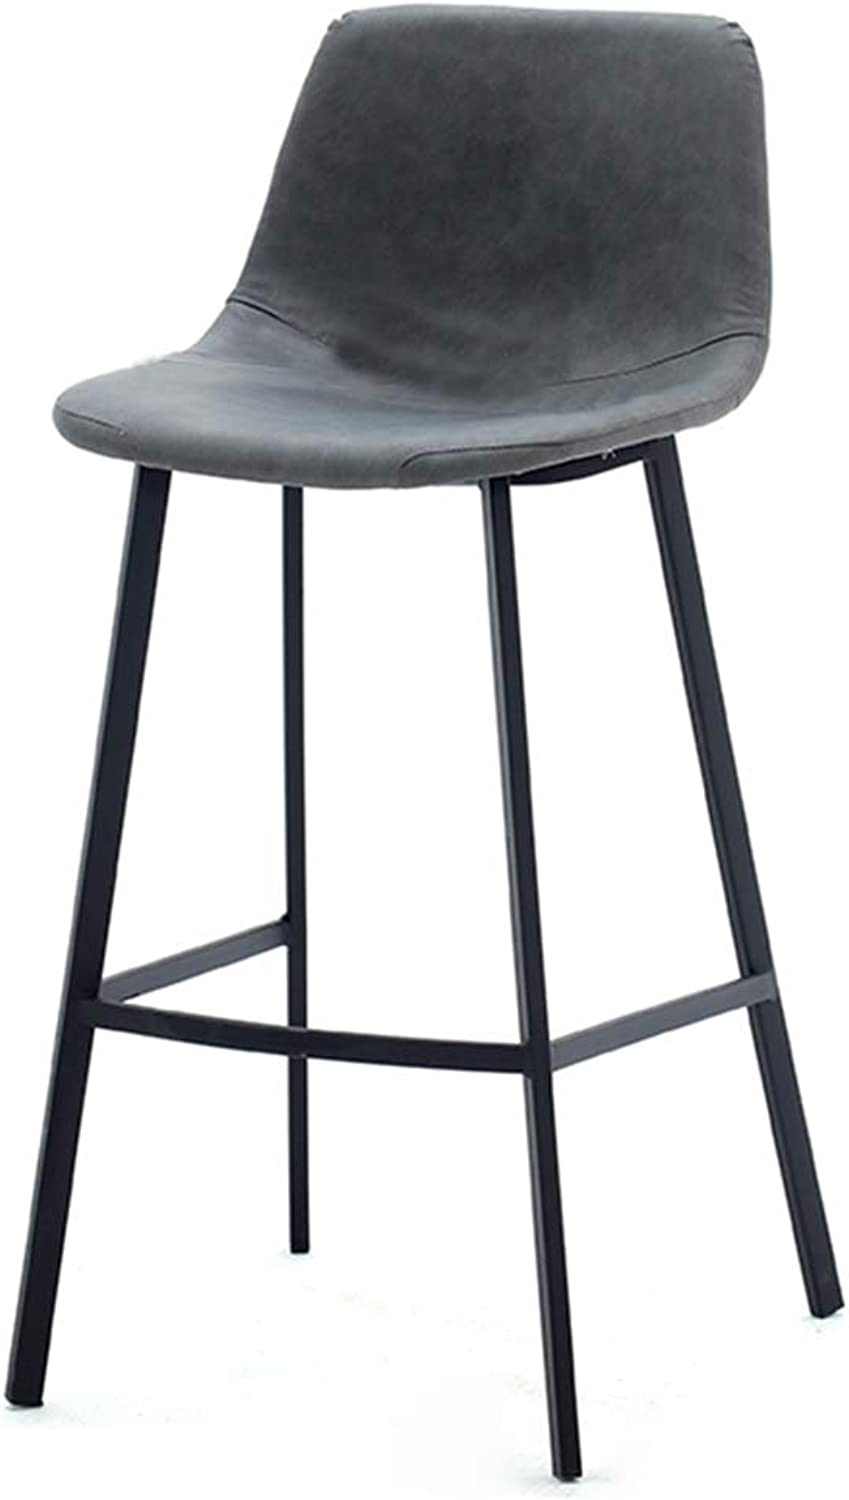 DingHome-ca Counter Height Barstool - Nordic Luxury Minimalist Style - Black Wrought Iron Base - Multicolor Artificial Leather Seat